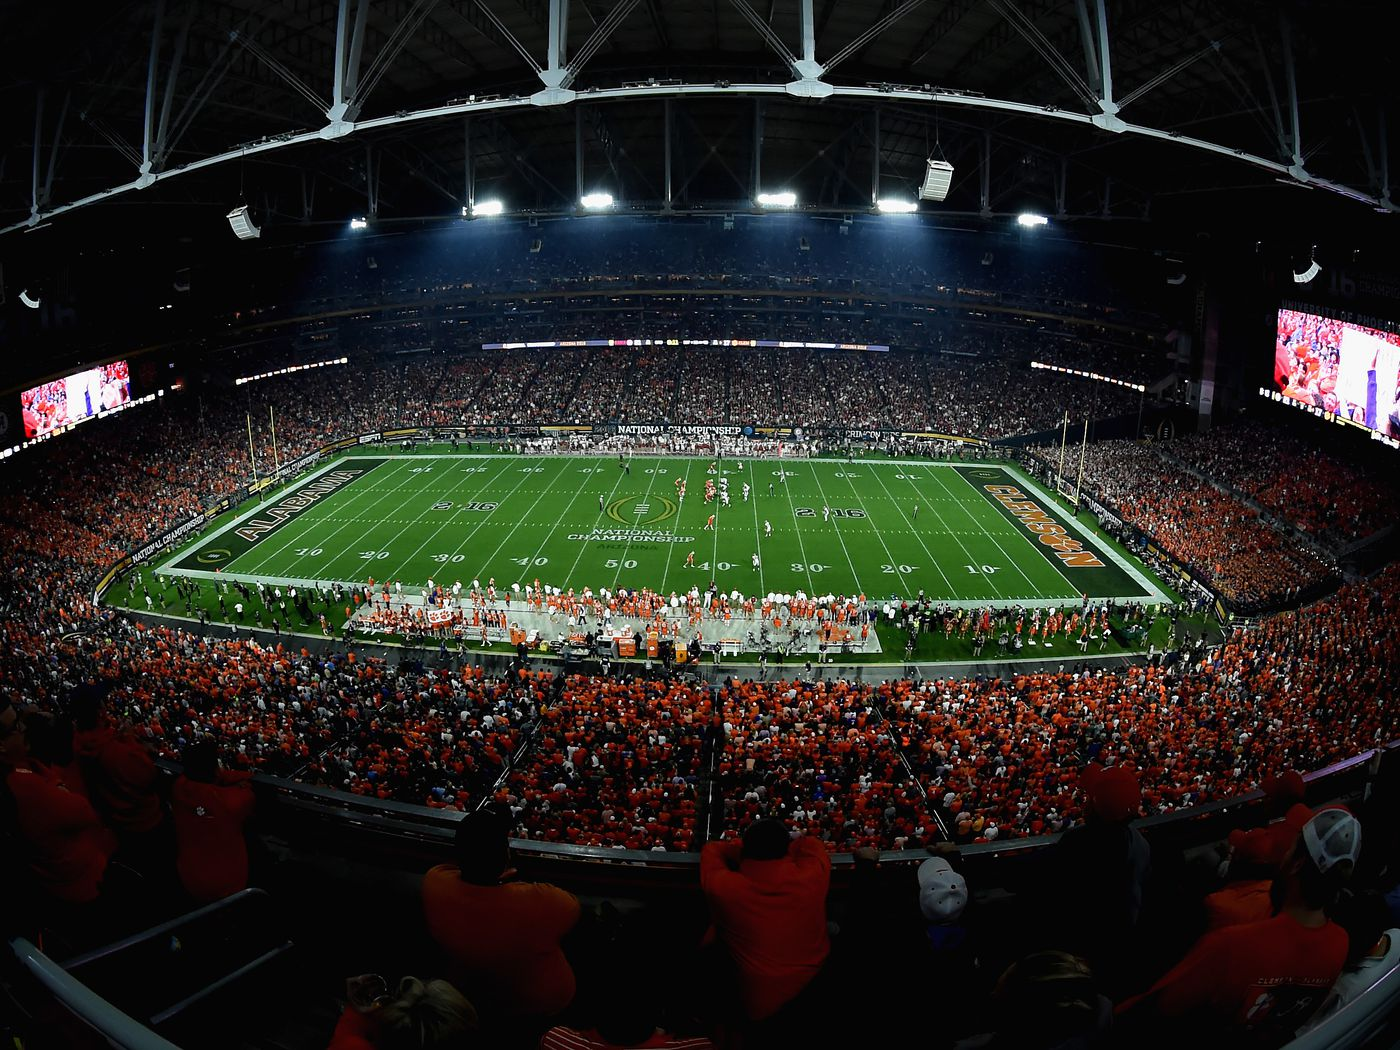 The cord-cutter's guide to (legally) watching college football